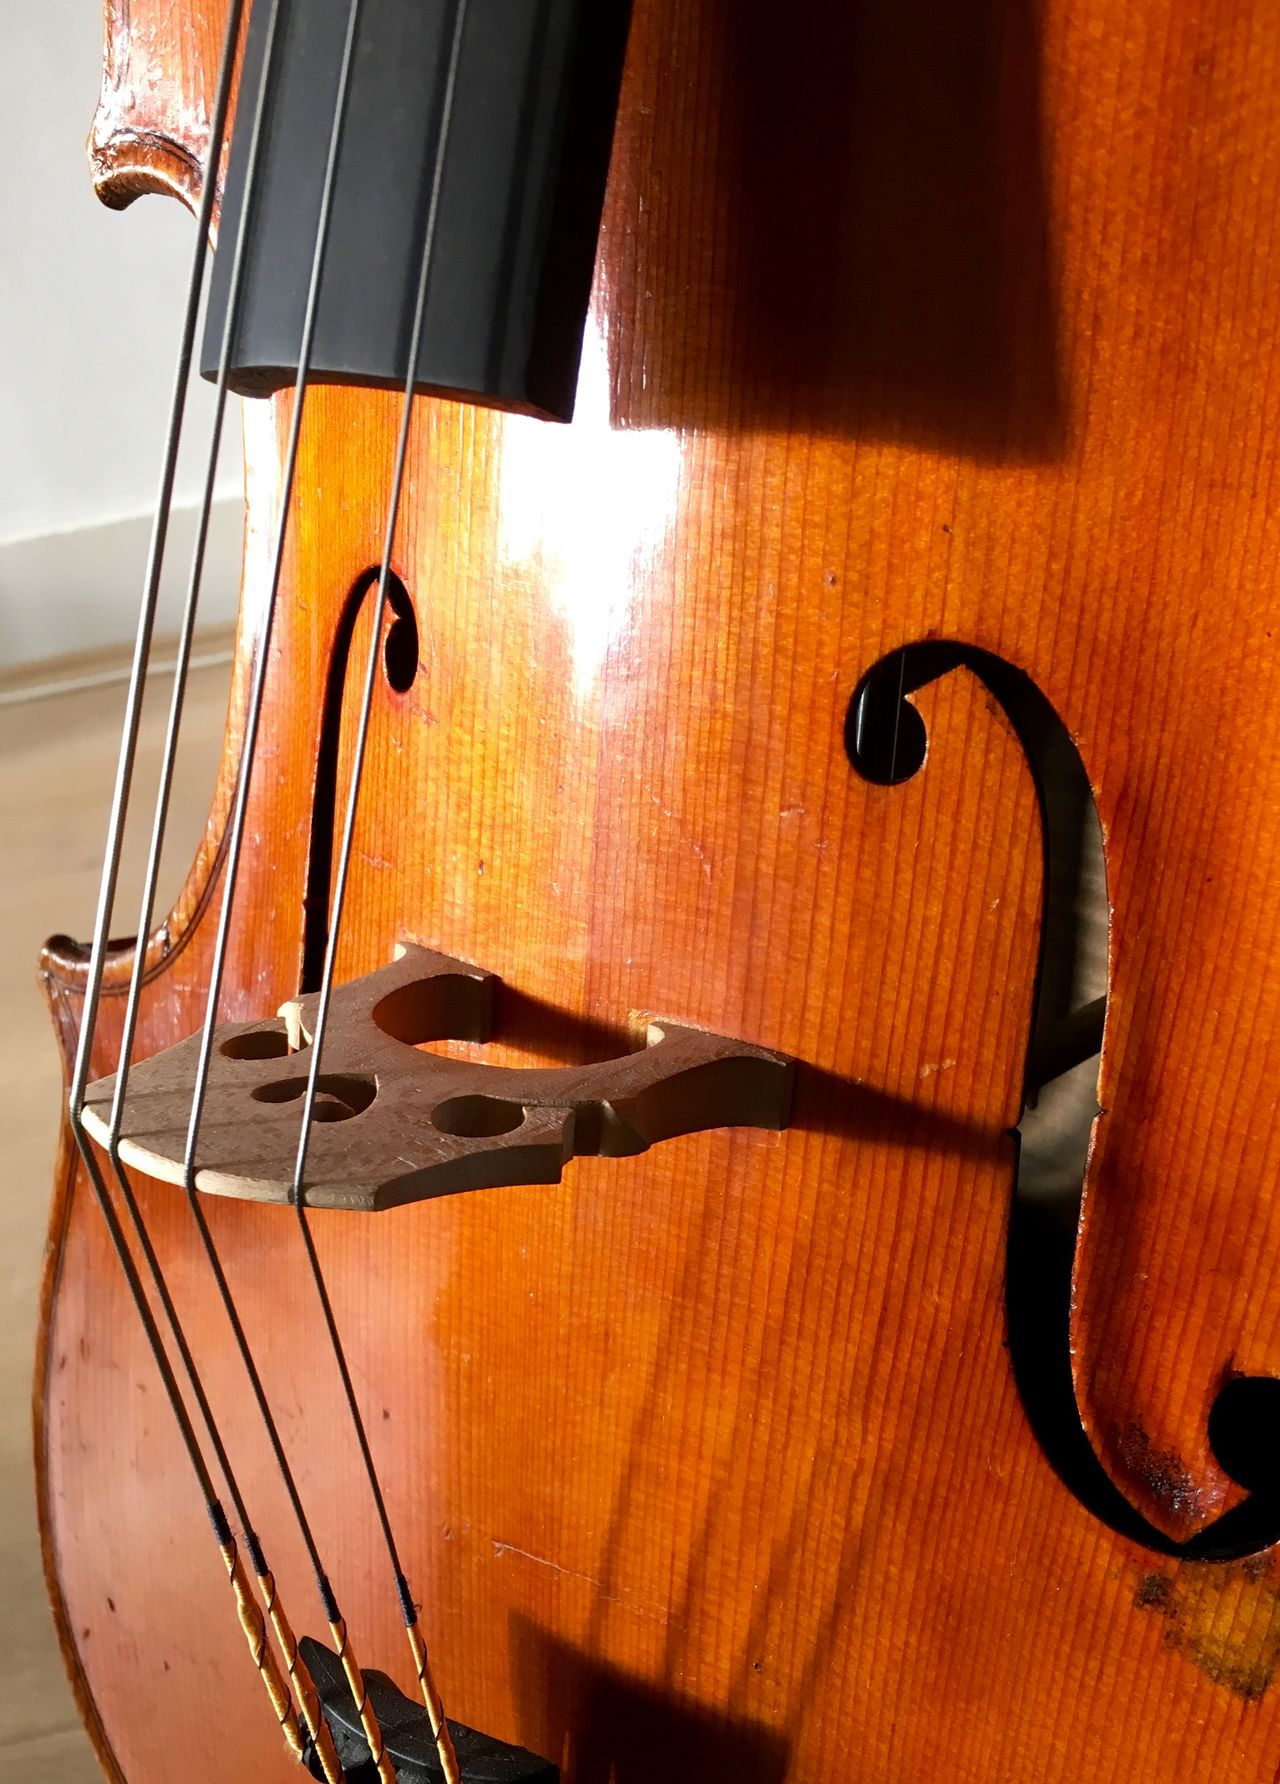 Cello 19th Century Detail F-hole IndoorPhotography Wood - Material Musical Instruments Textures And Surfaces